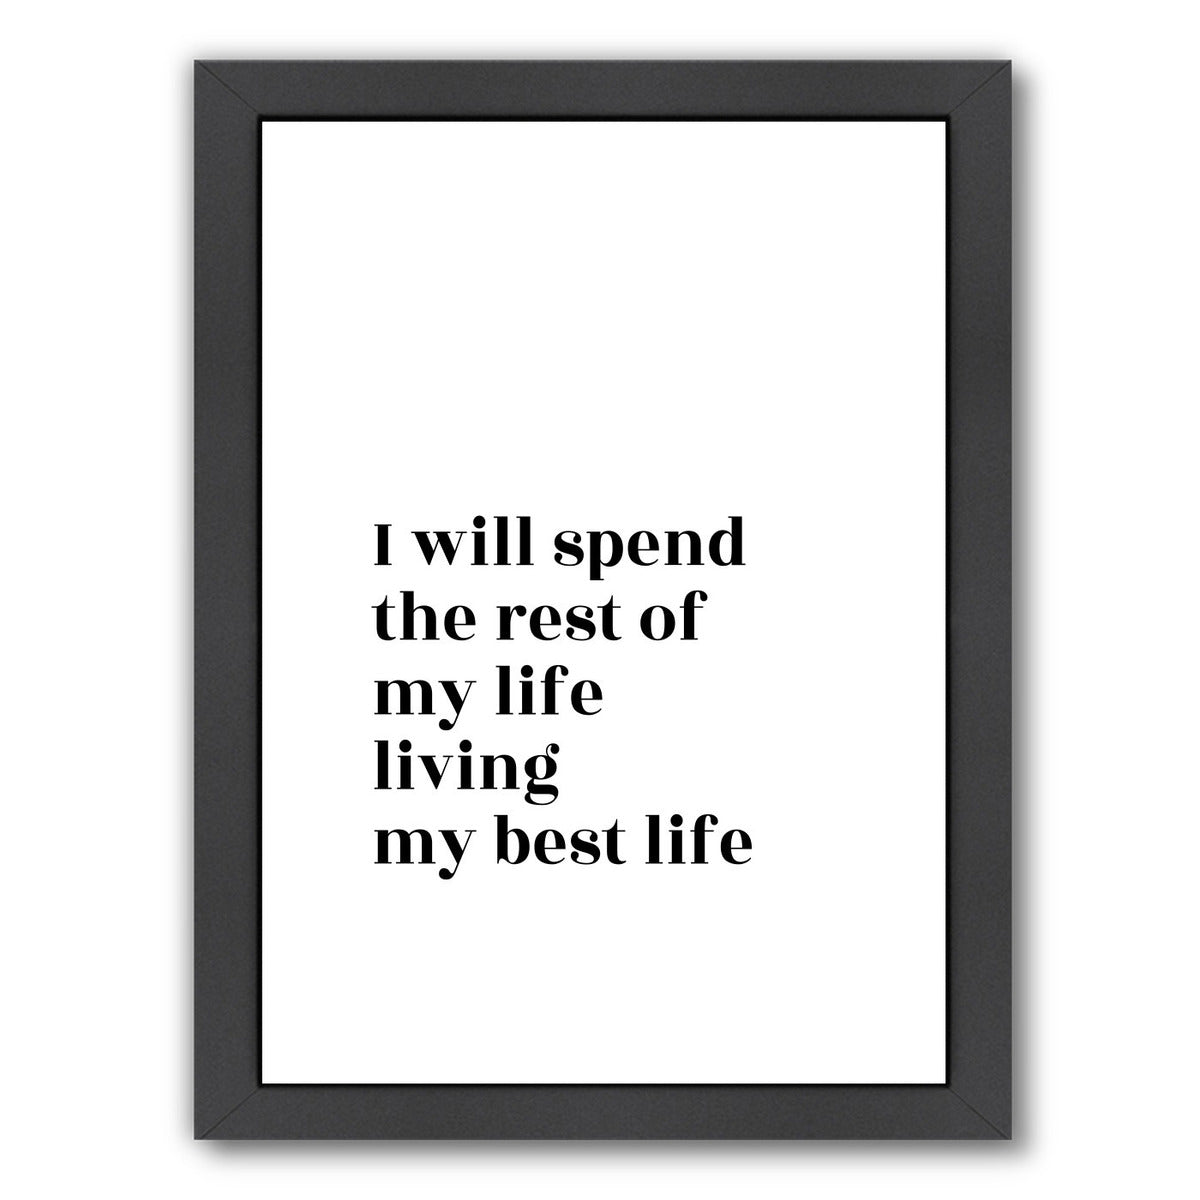 Commitment by Explicit Design Framed Print - Wall Art - Americanflat